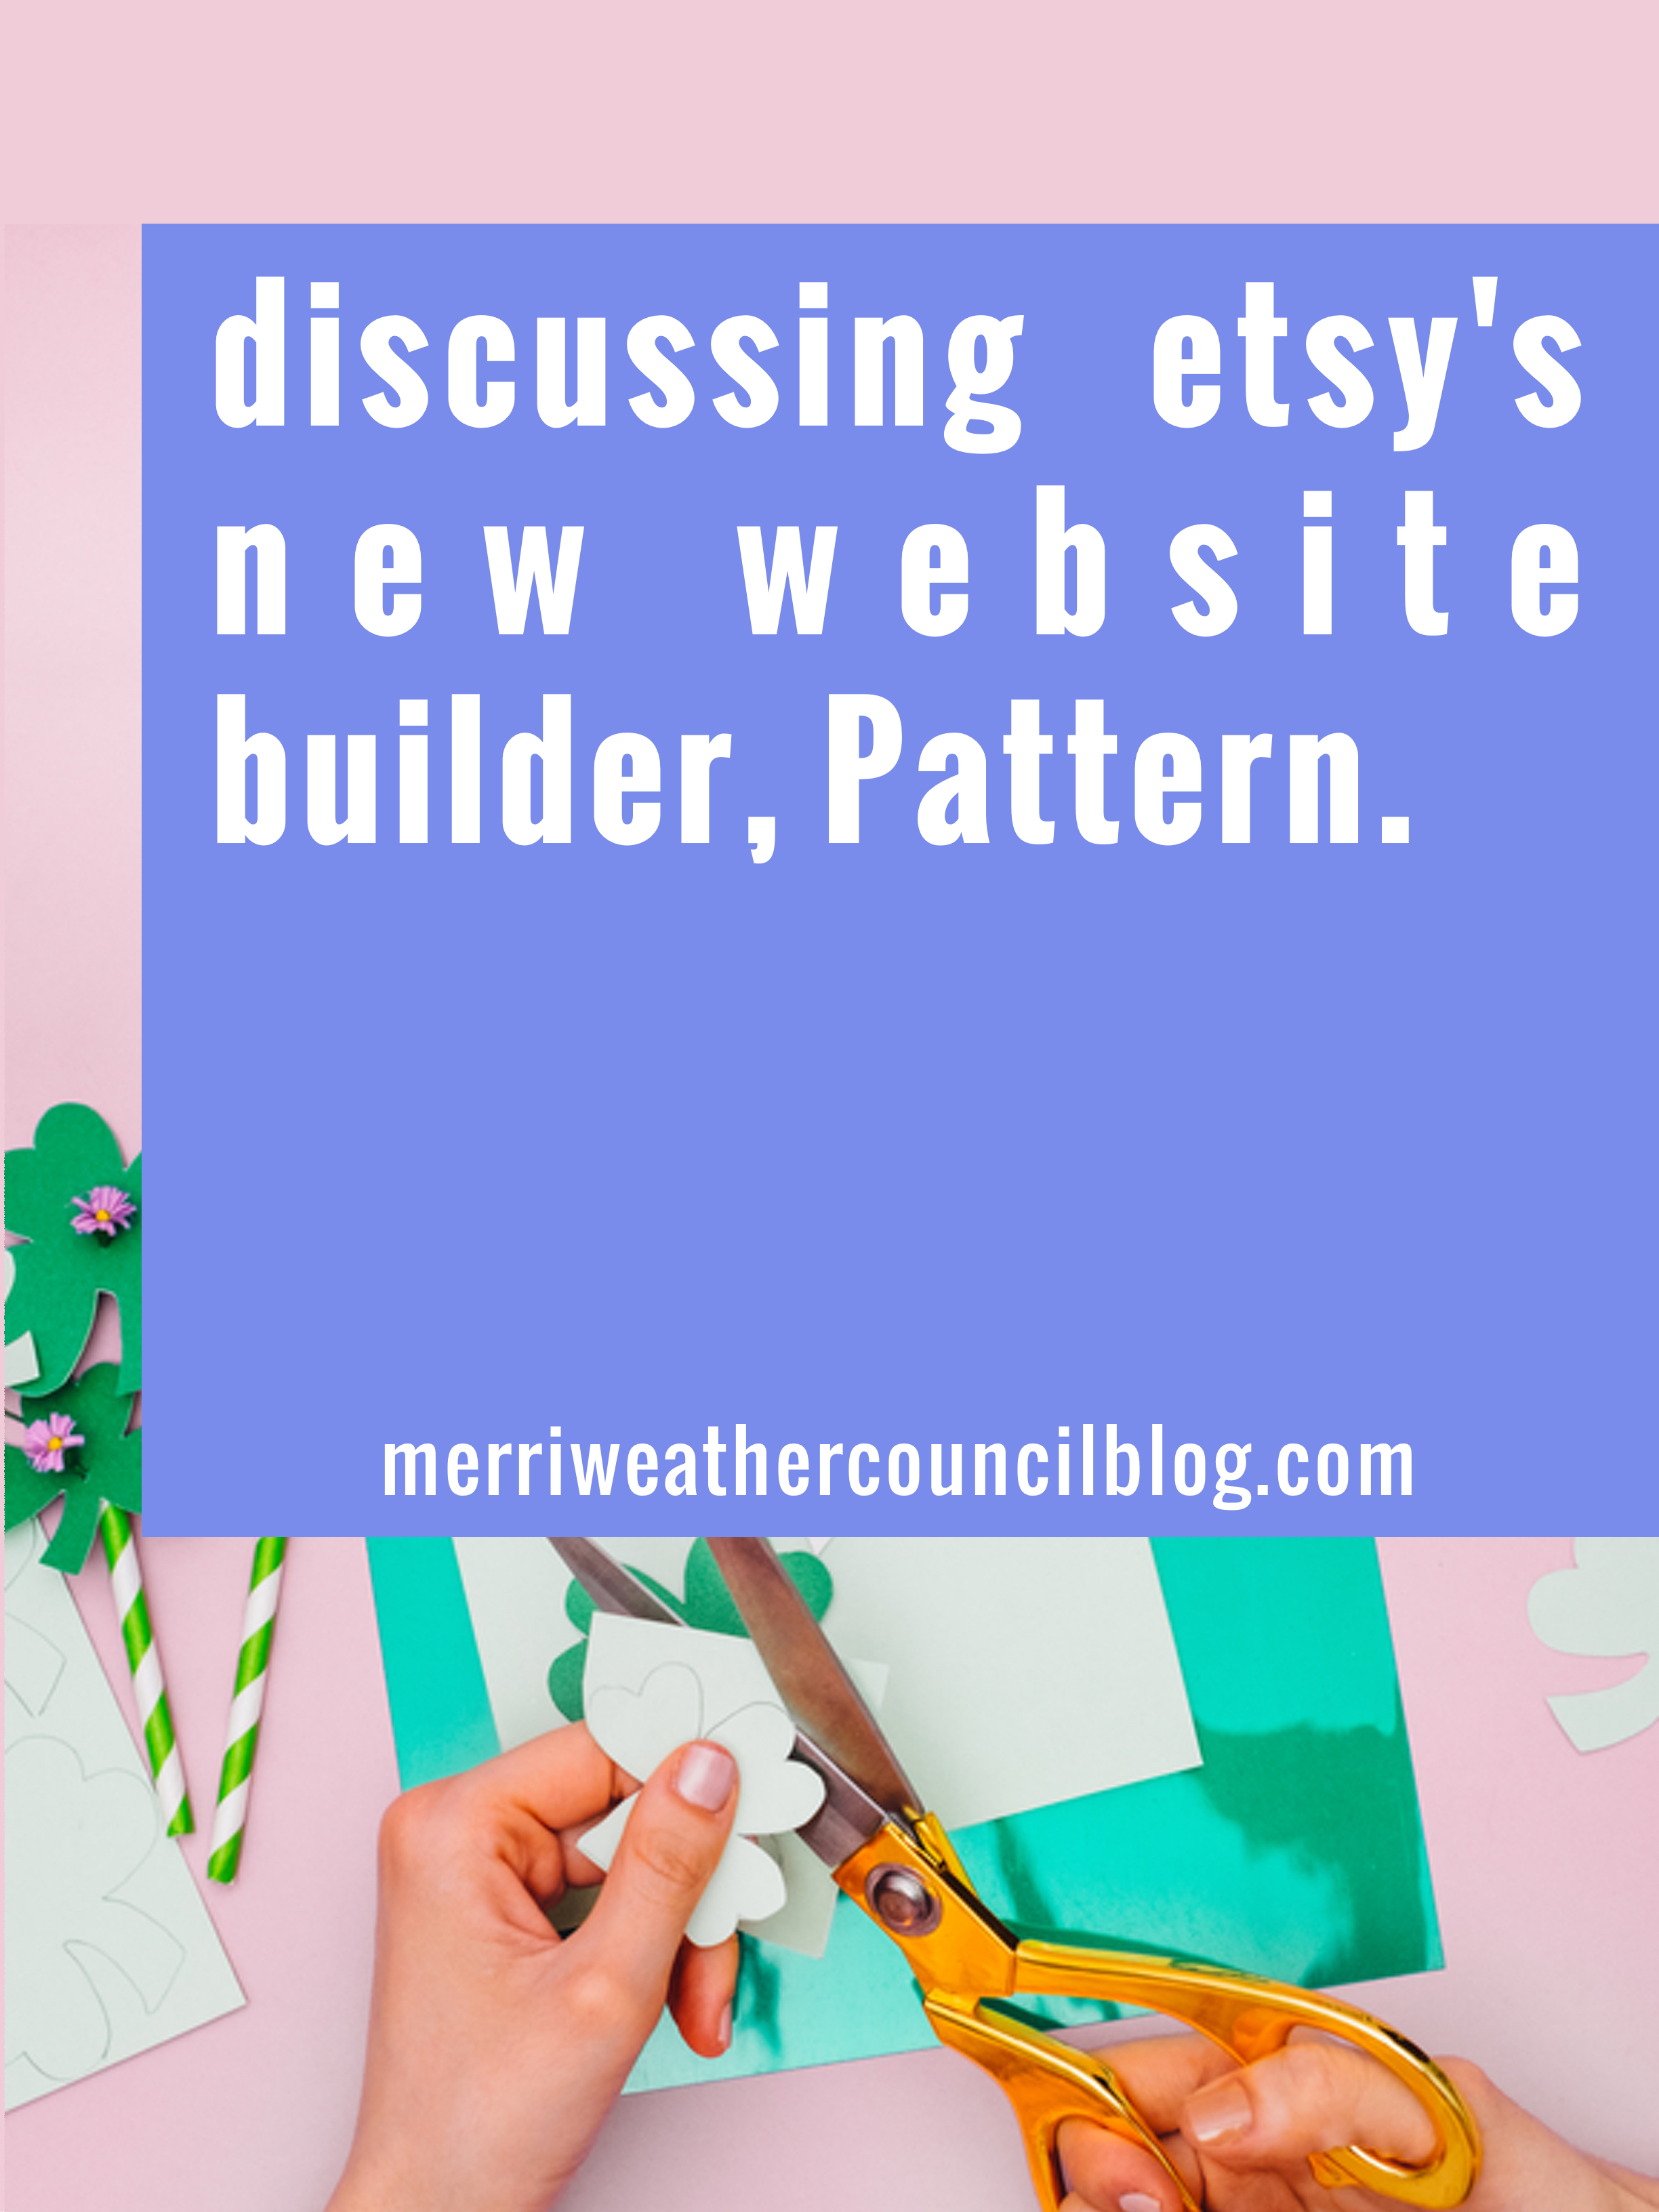 Pros, Cons and a Discussion about Etsy's New Website Builder, Pattern with Abby Glassenberg | the merriweather council blog